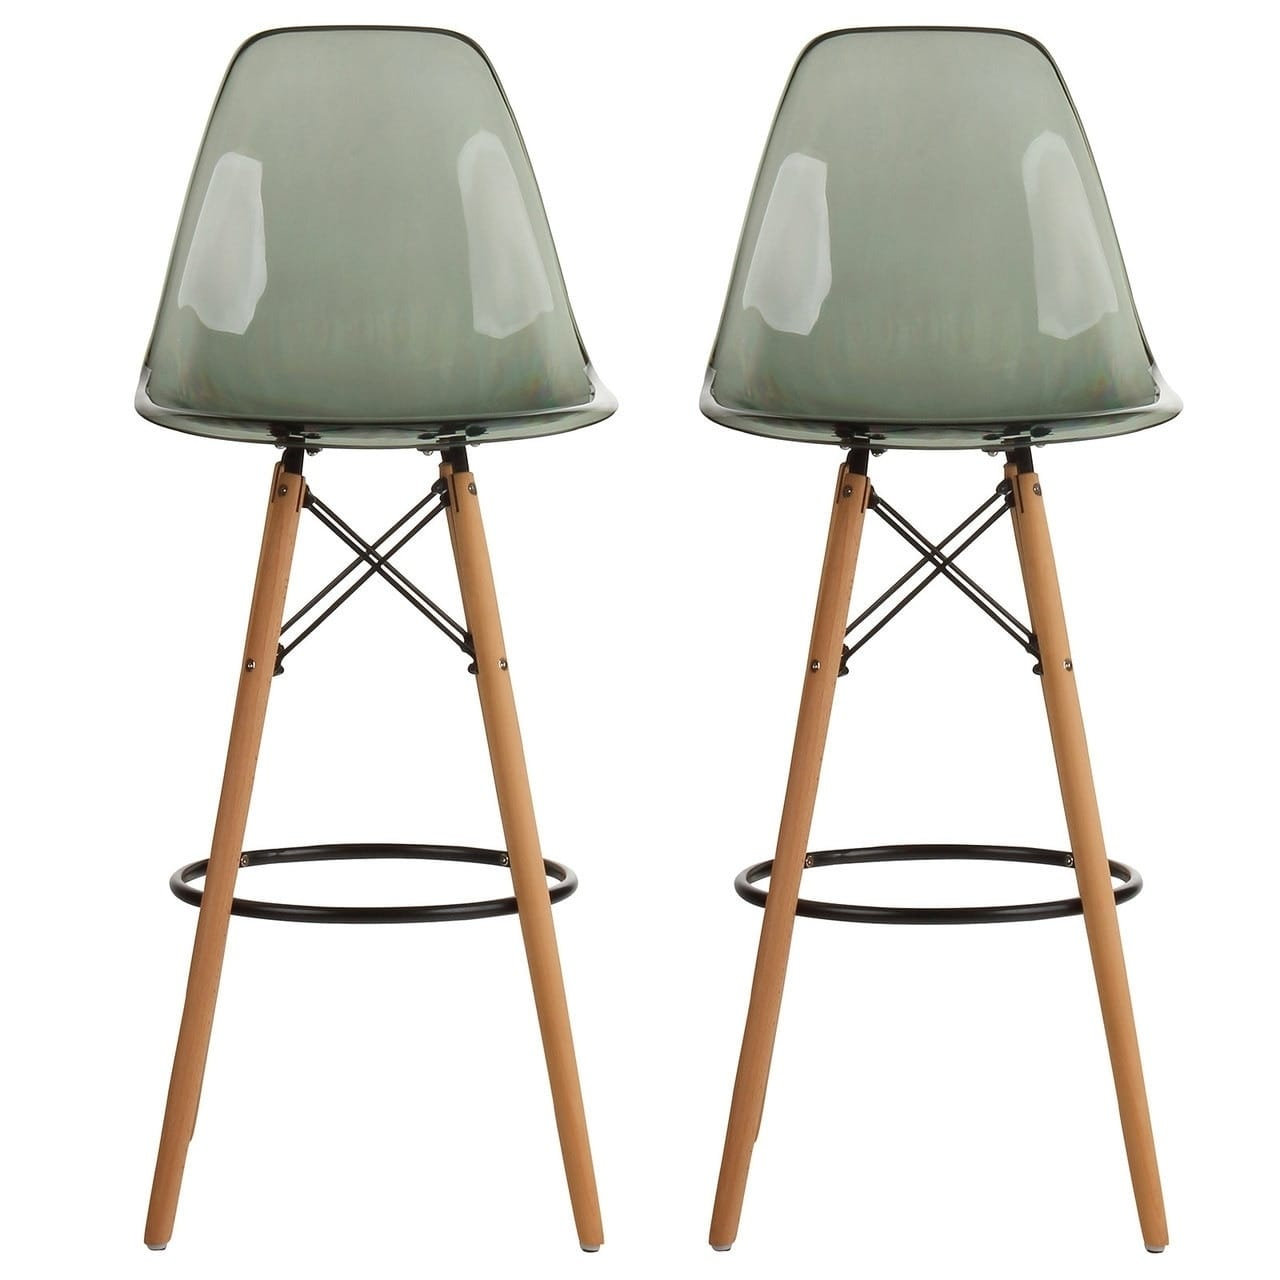 PoliVaz Mid-Century Modern Retro 30 In. Bar Stool, Set of 2 by Overstock